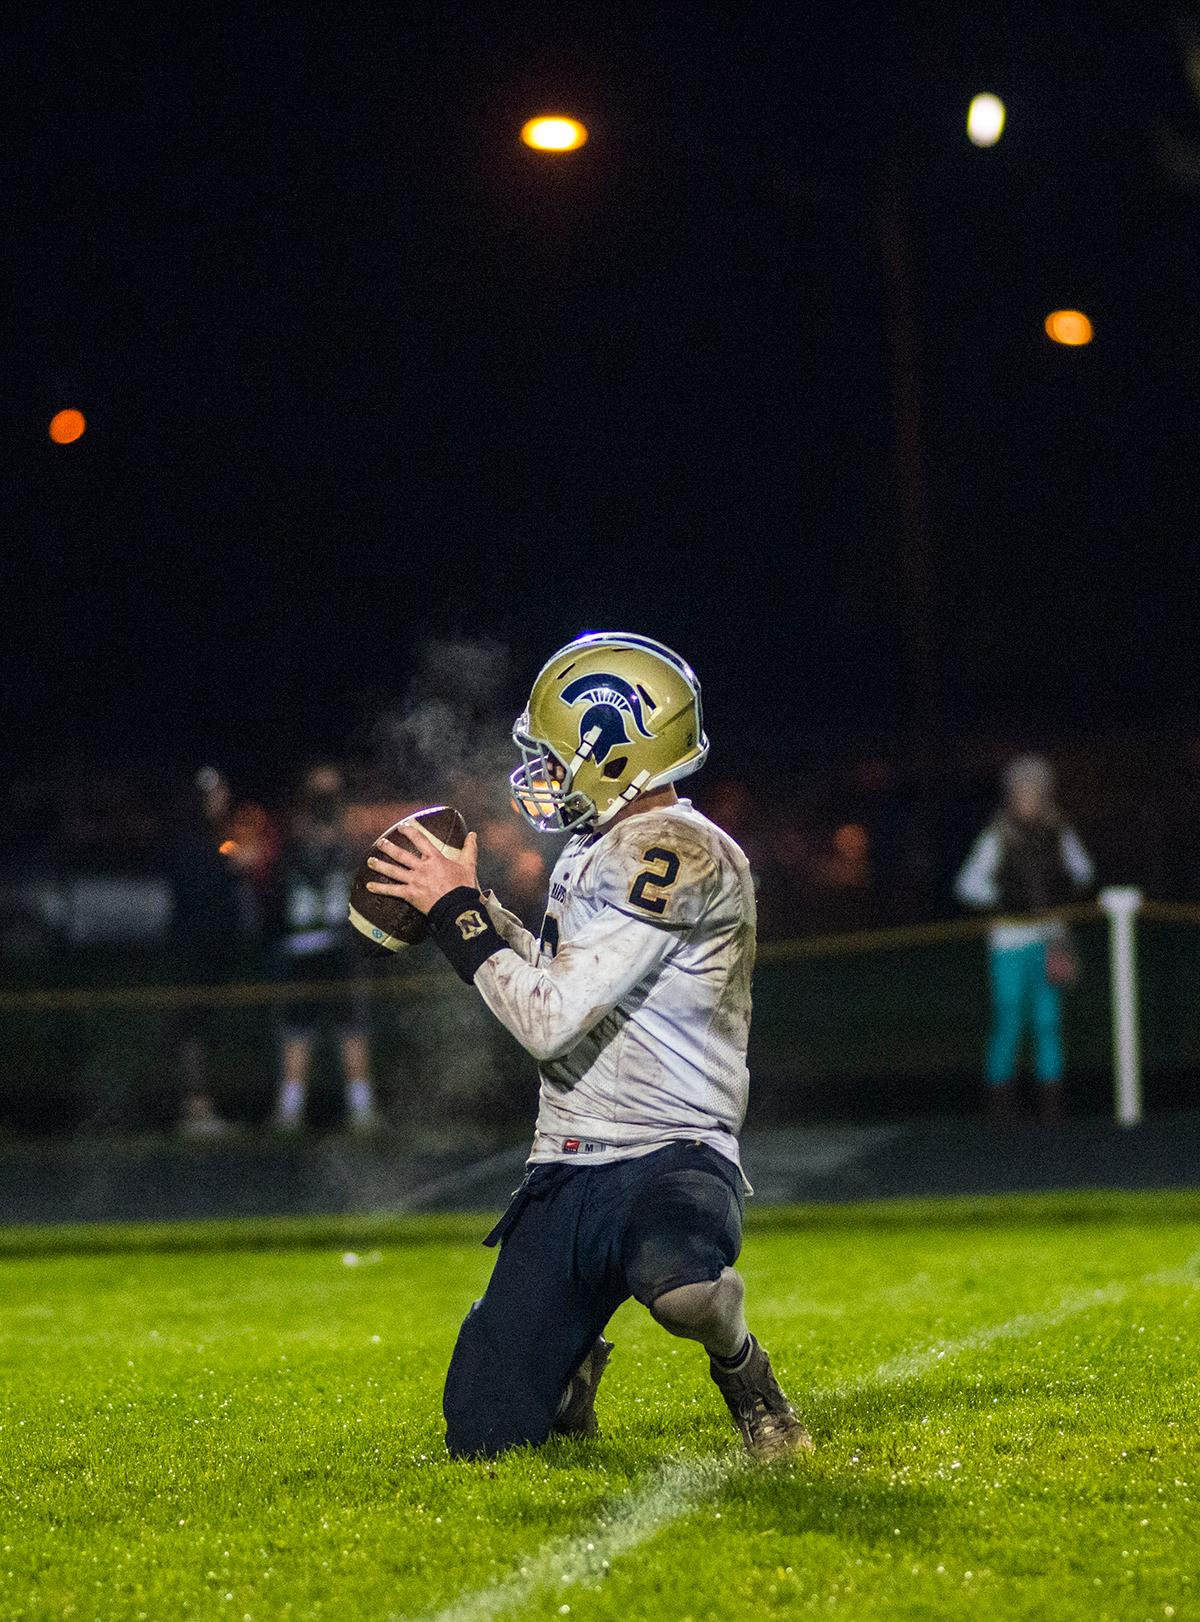 Marist Spartans Max Whittaker (#2) catches the ball before he places it on the yard line for the kicker. Thurston Colts defeated Marist Catholic Spartans 50-14 to seal second place in their conference on Friday night at Thurston High School. Photo by Rhianna Gelhart, Oregon News Lab